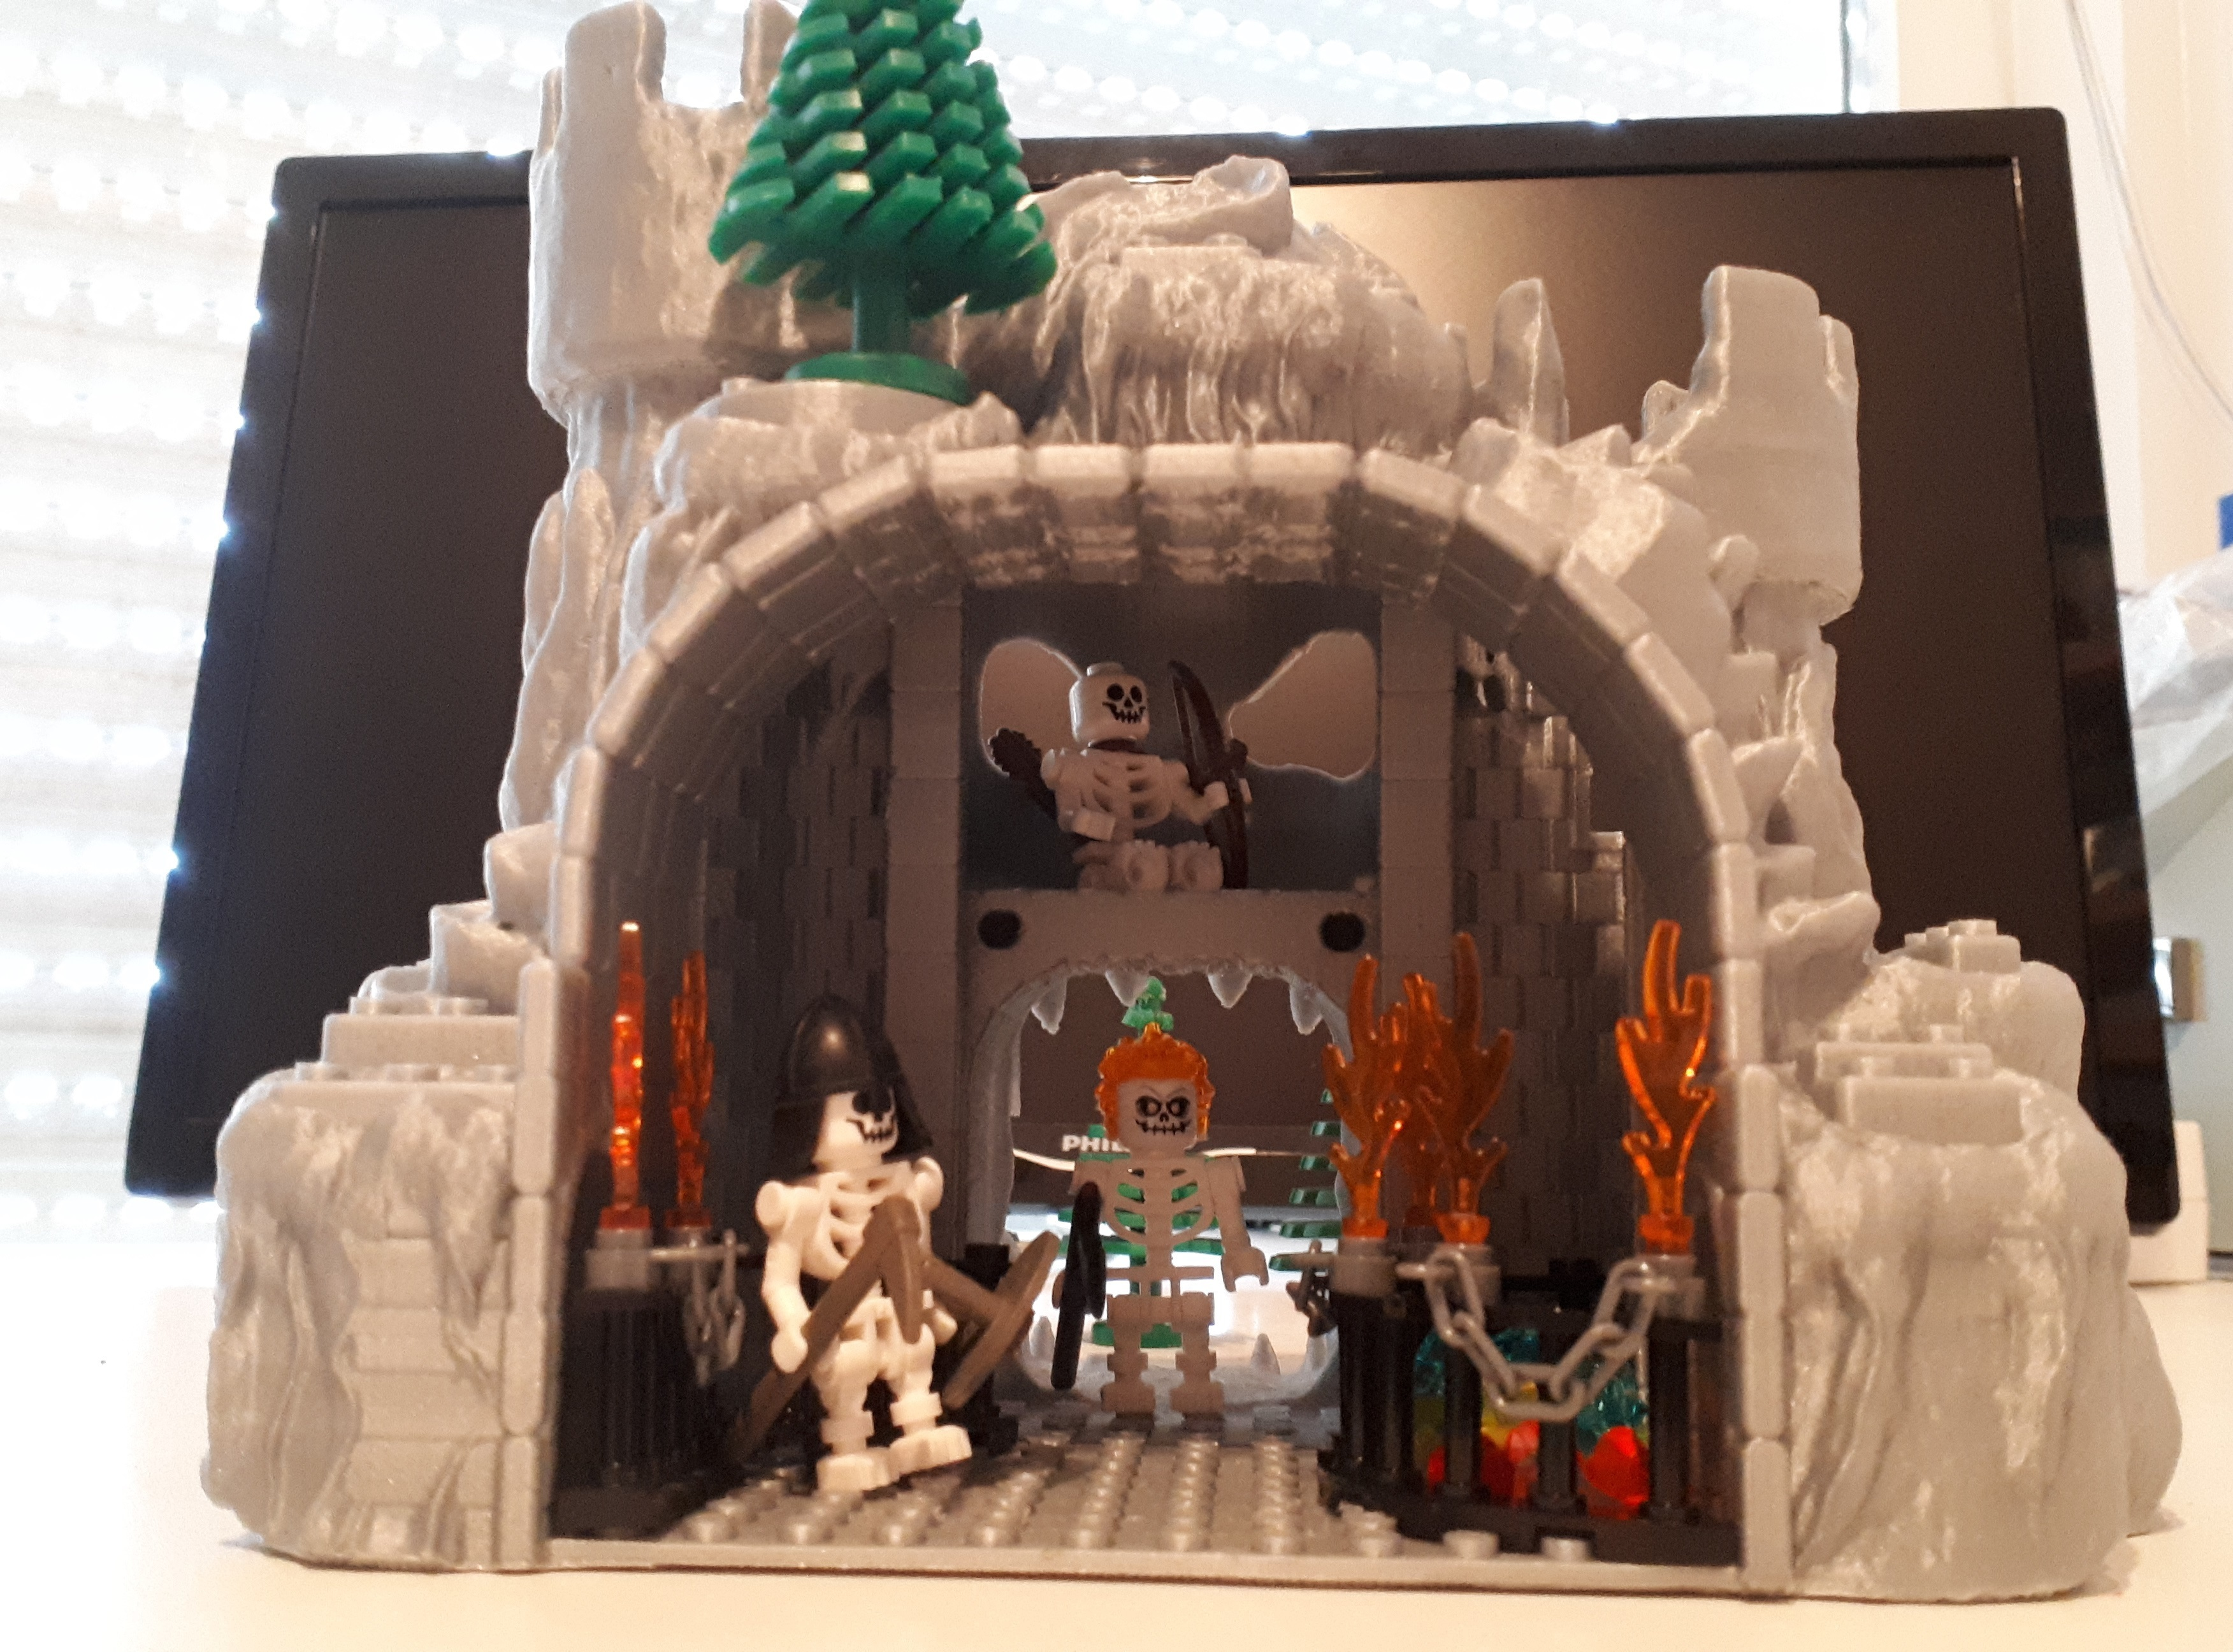 20190730_130417.jpg Download free STL file Gate to the Underworld (Lego compatible) • 3D printable model, edge